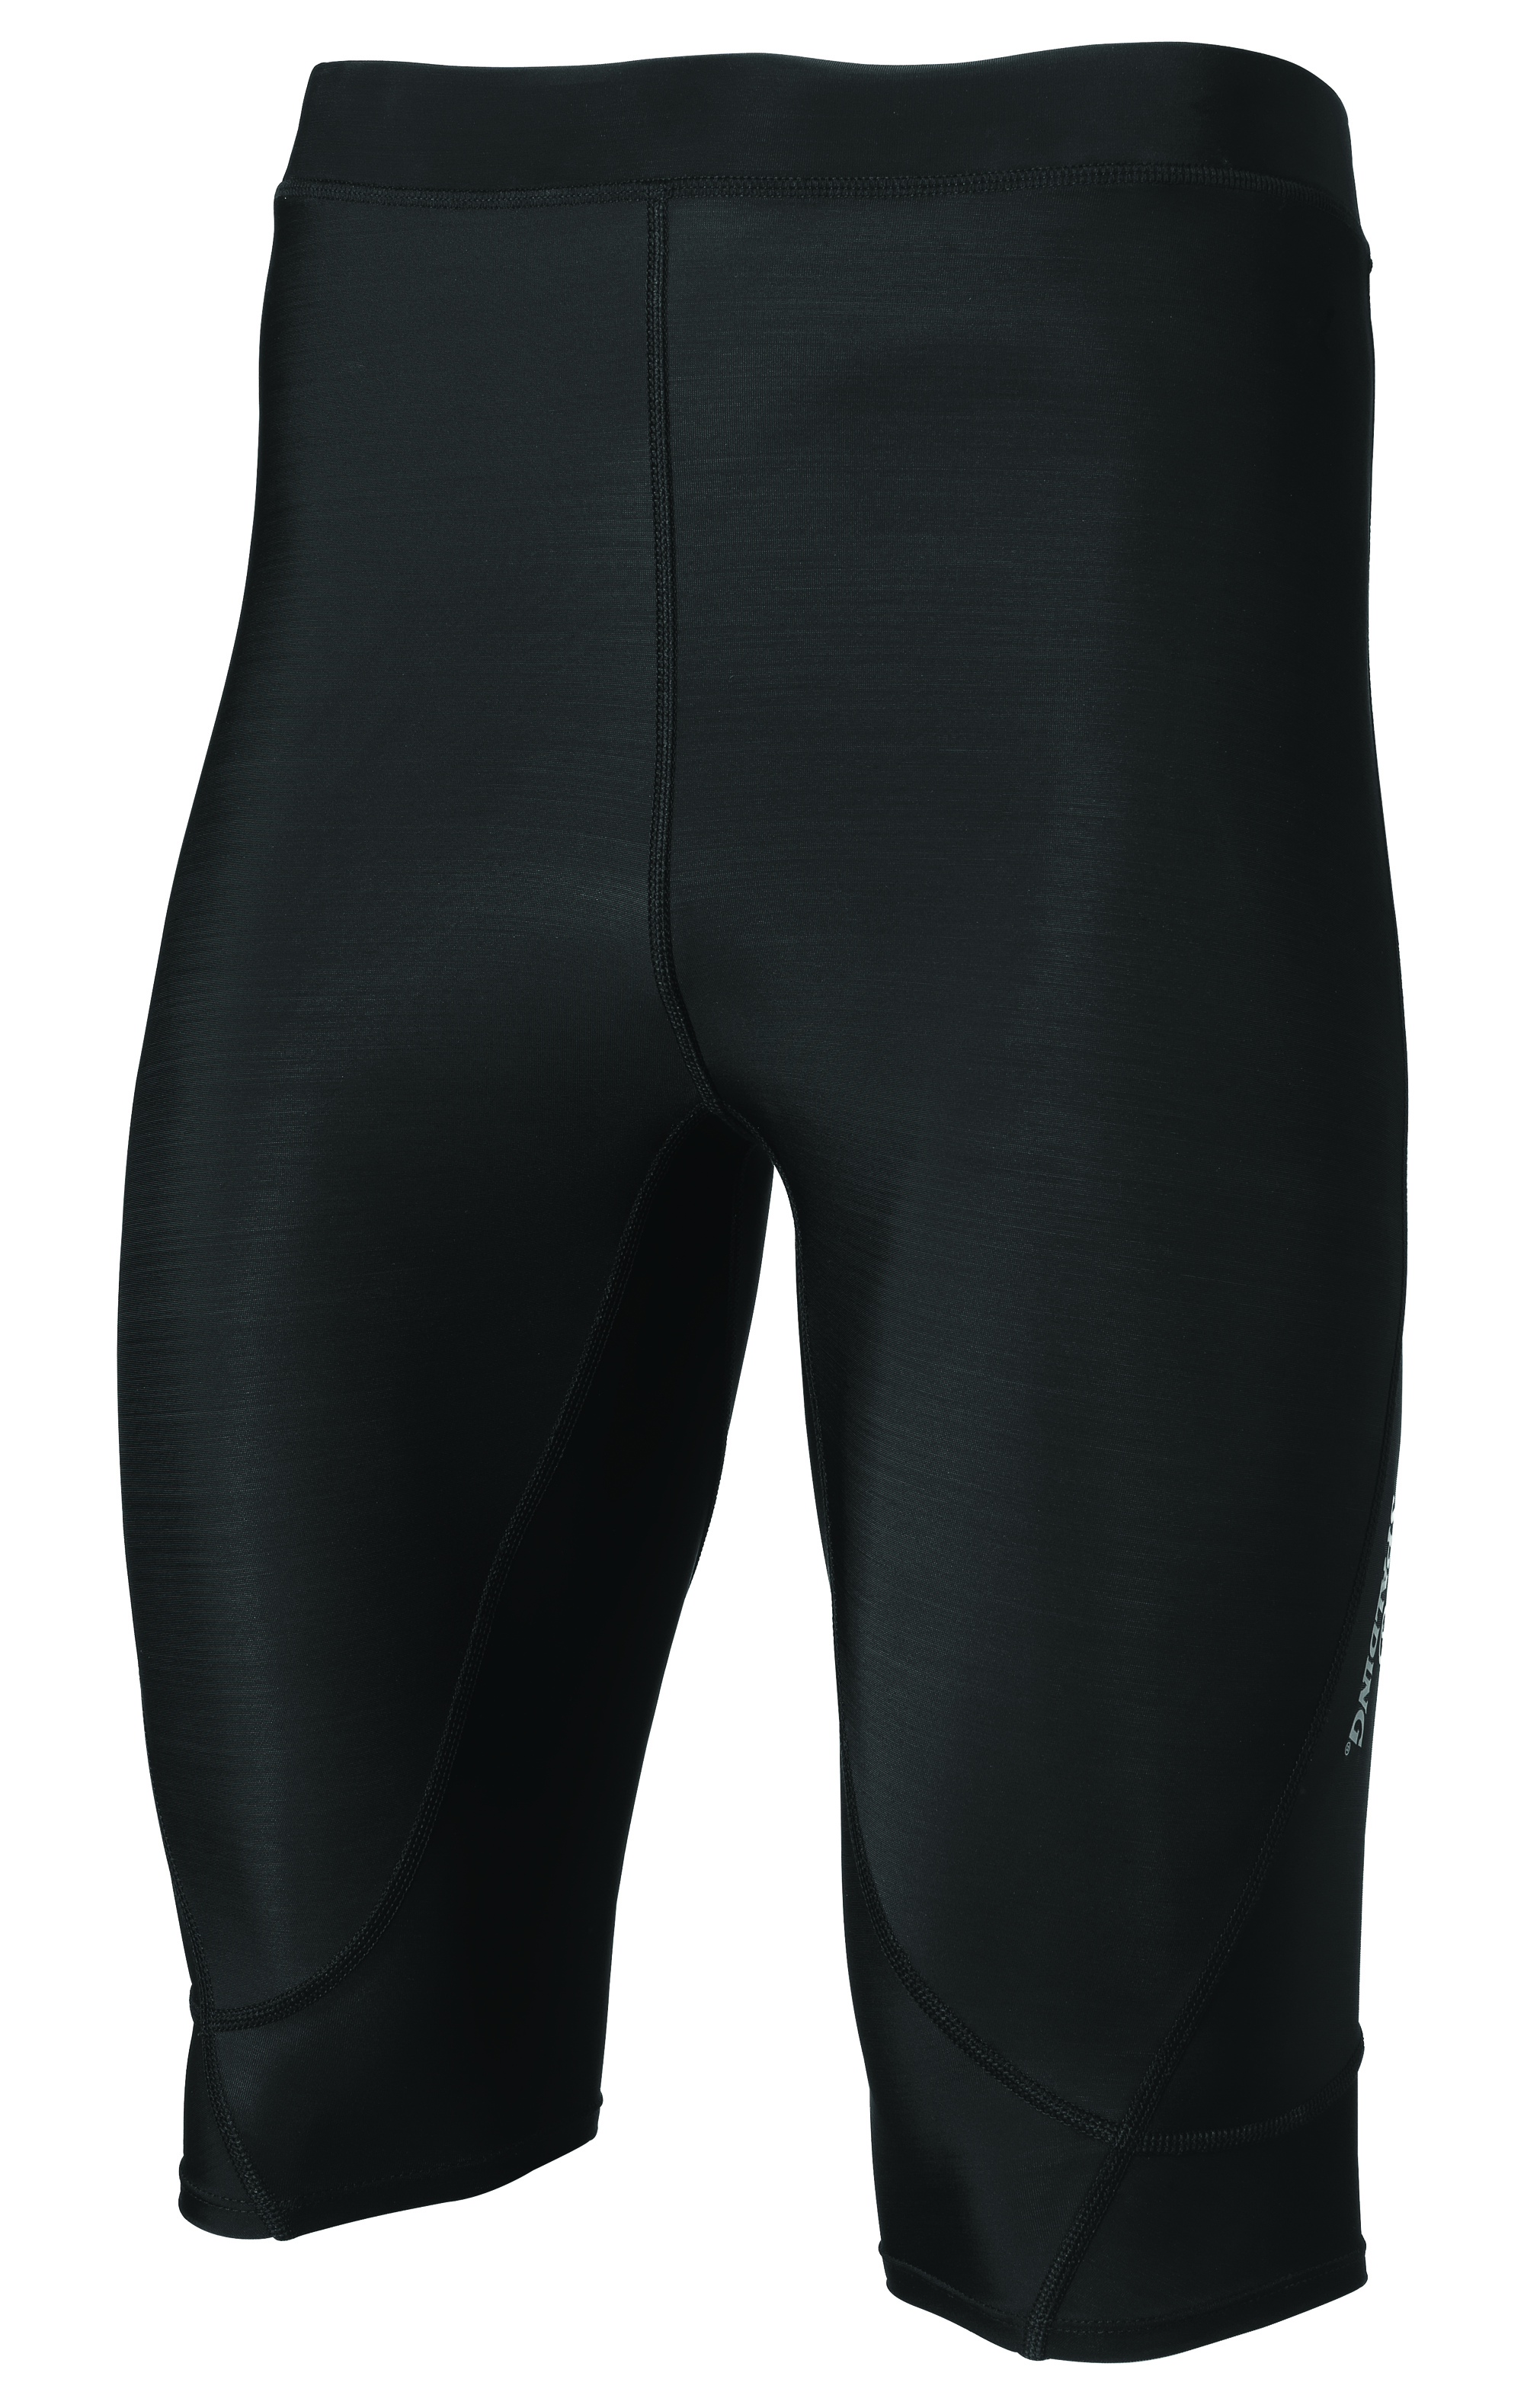 Response Base Layer Shorts